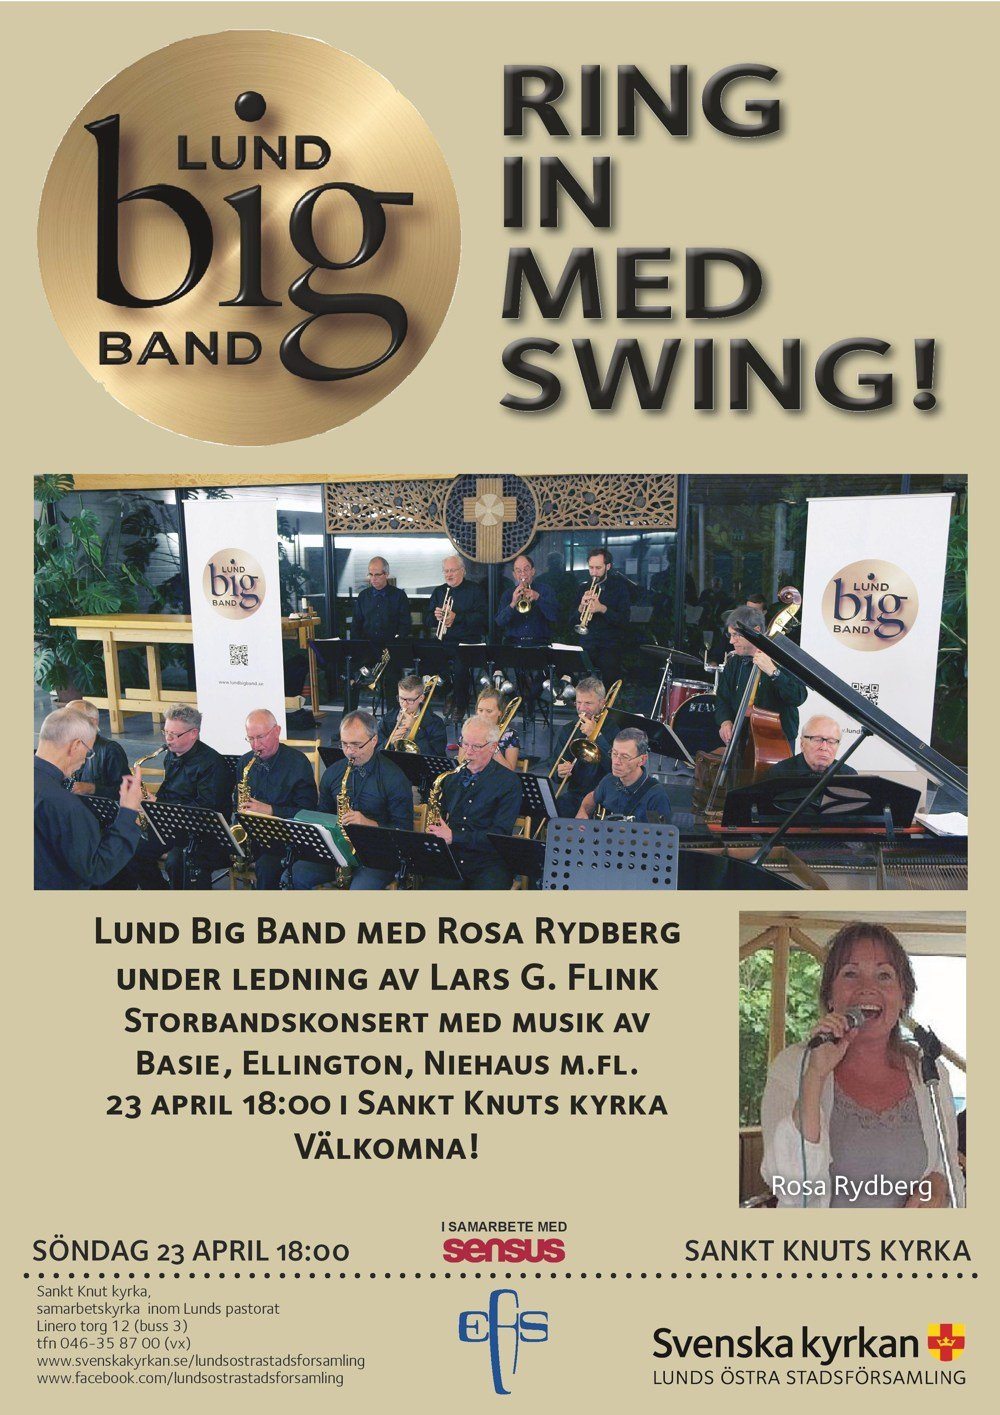 Lund Big Band - Vårkonsert i Lund